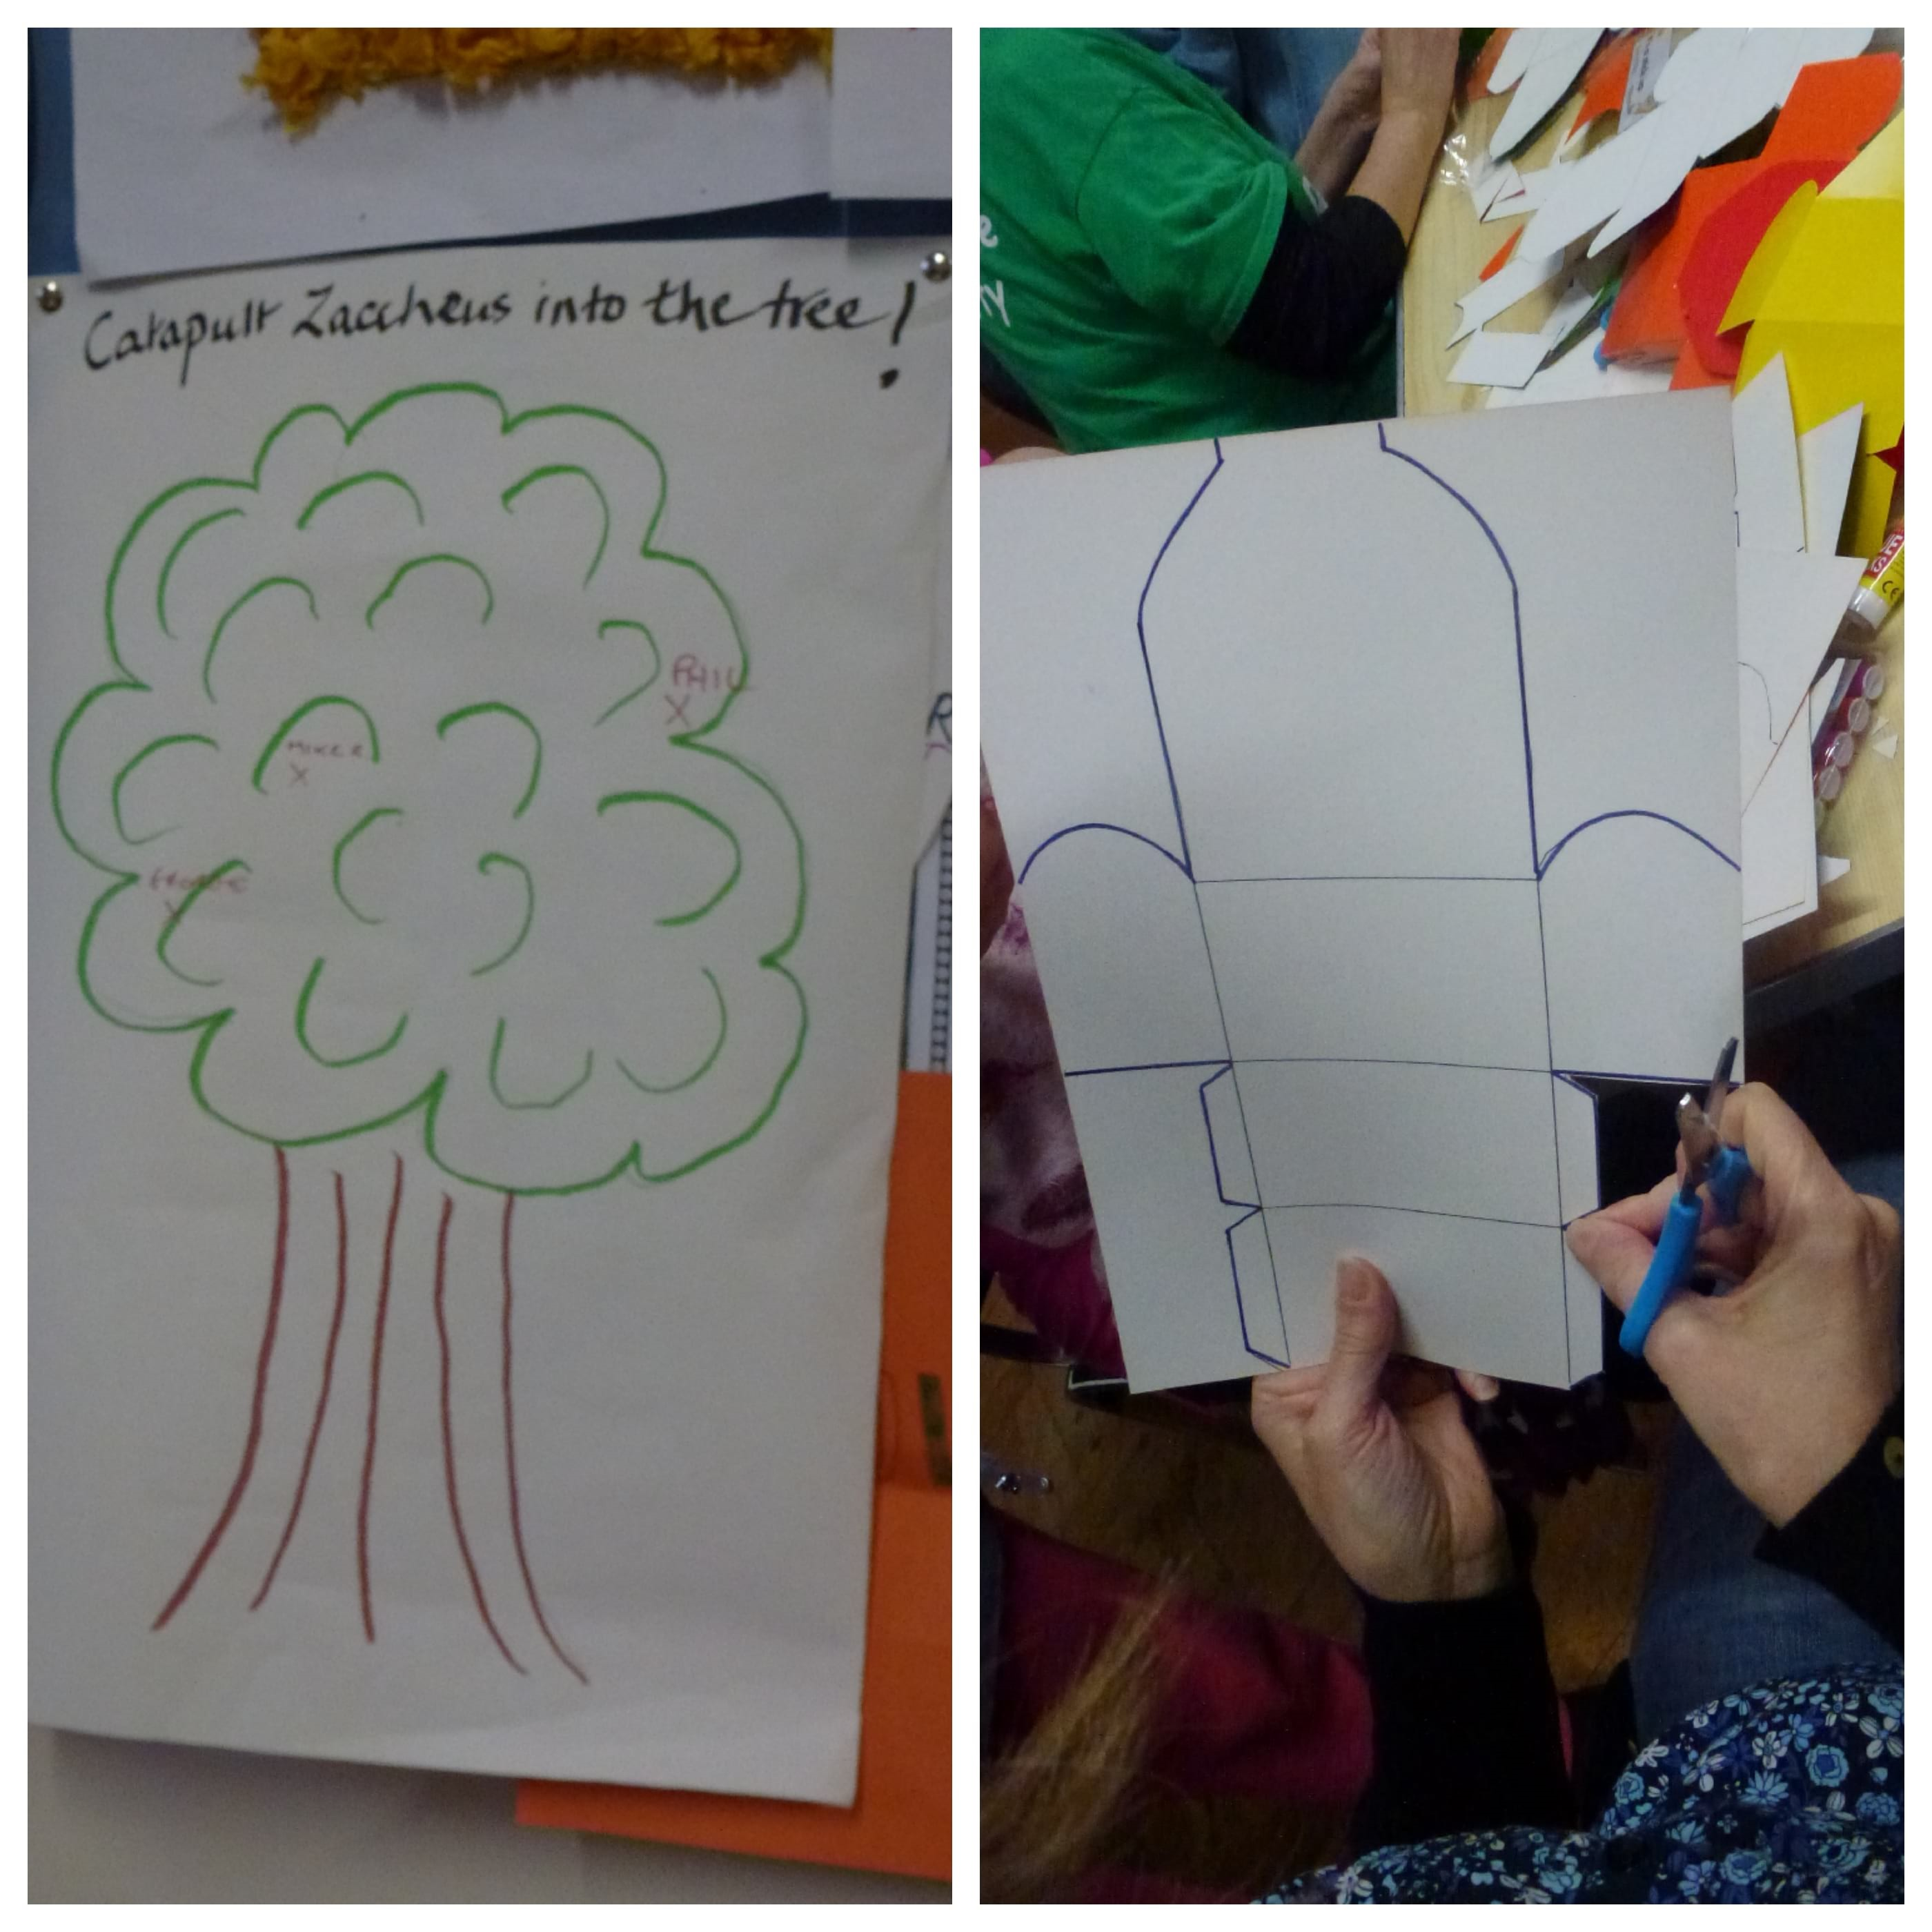 Some activities from March Messy Church. Catapault Zacchaeus into a tree and making a treasure chest.